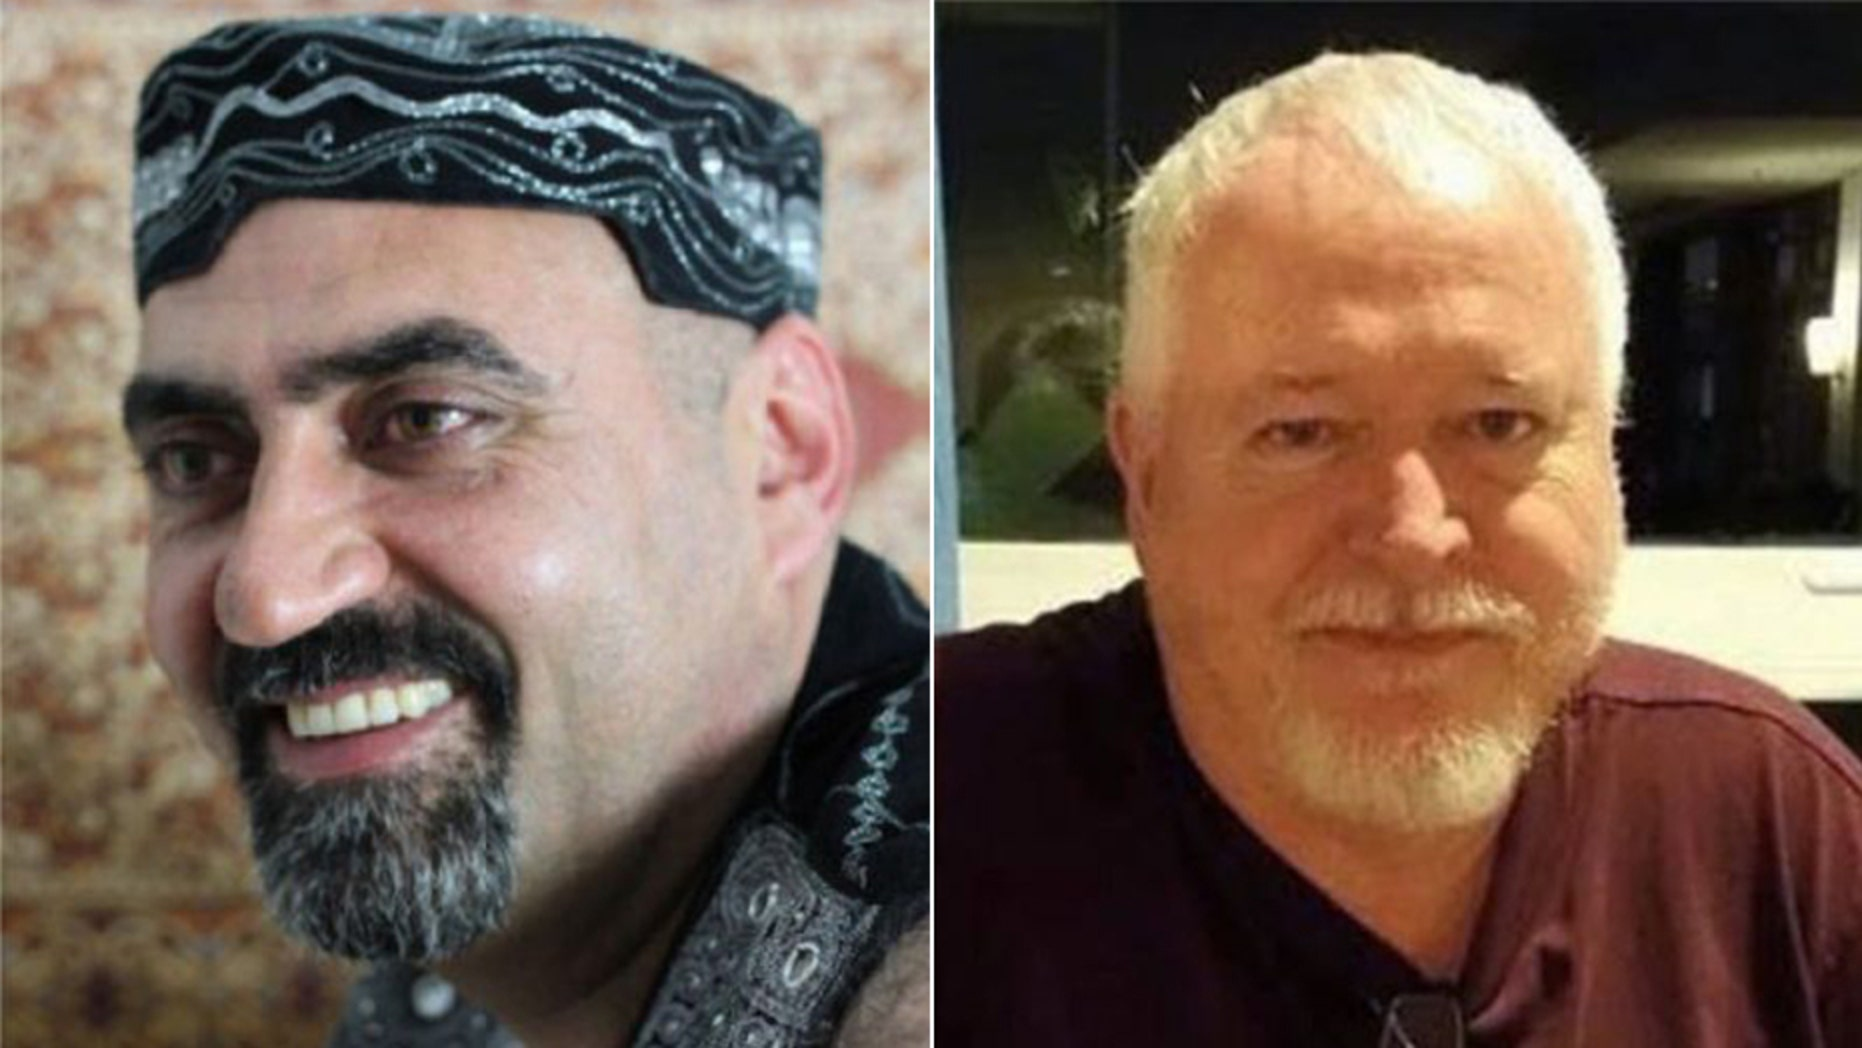 Bruce McArthur, right, is now facing a murder charge in relation to the death of Abdulbasir Faizi, left.